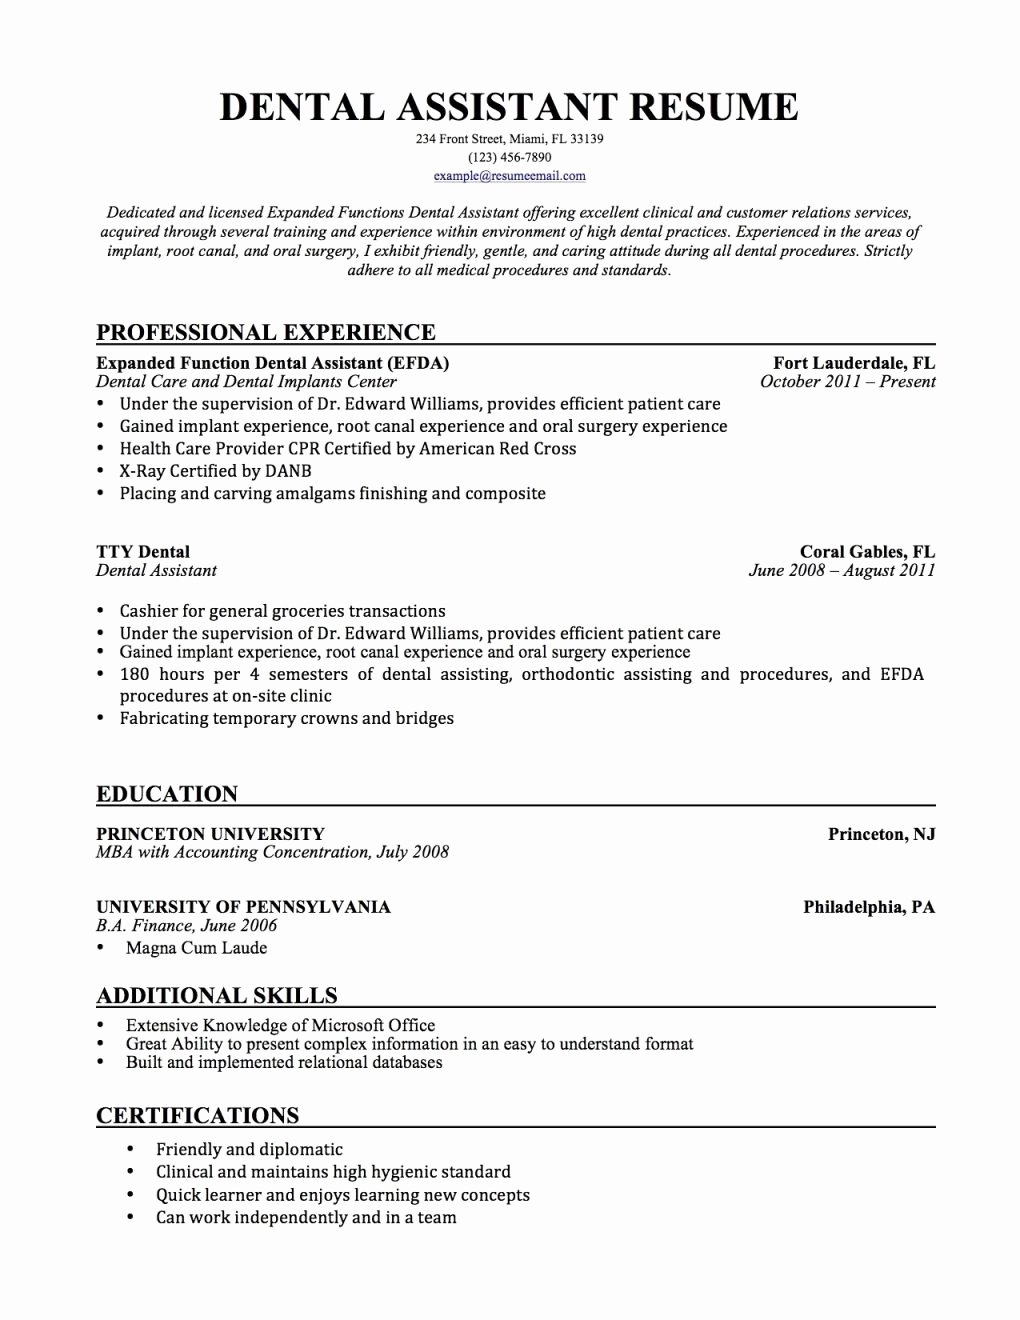 Ideal orthodontic assistant Resume Xz91 – Documentaries